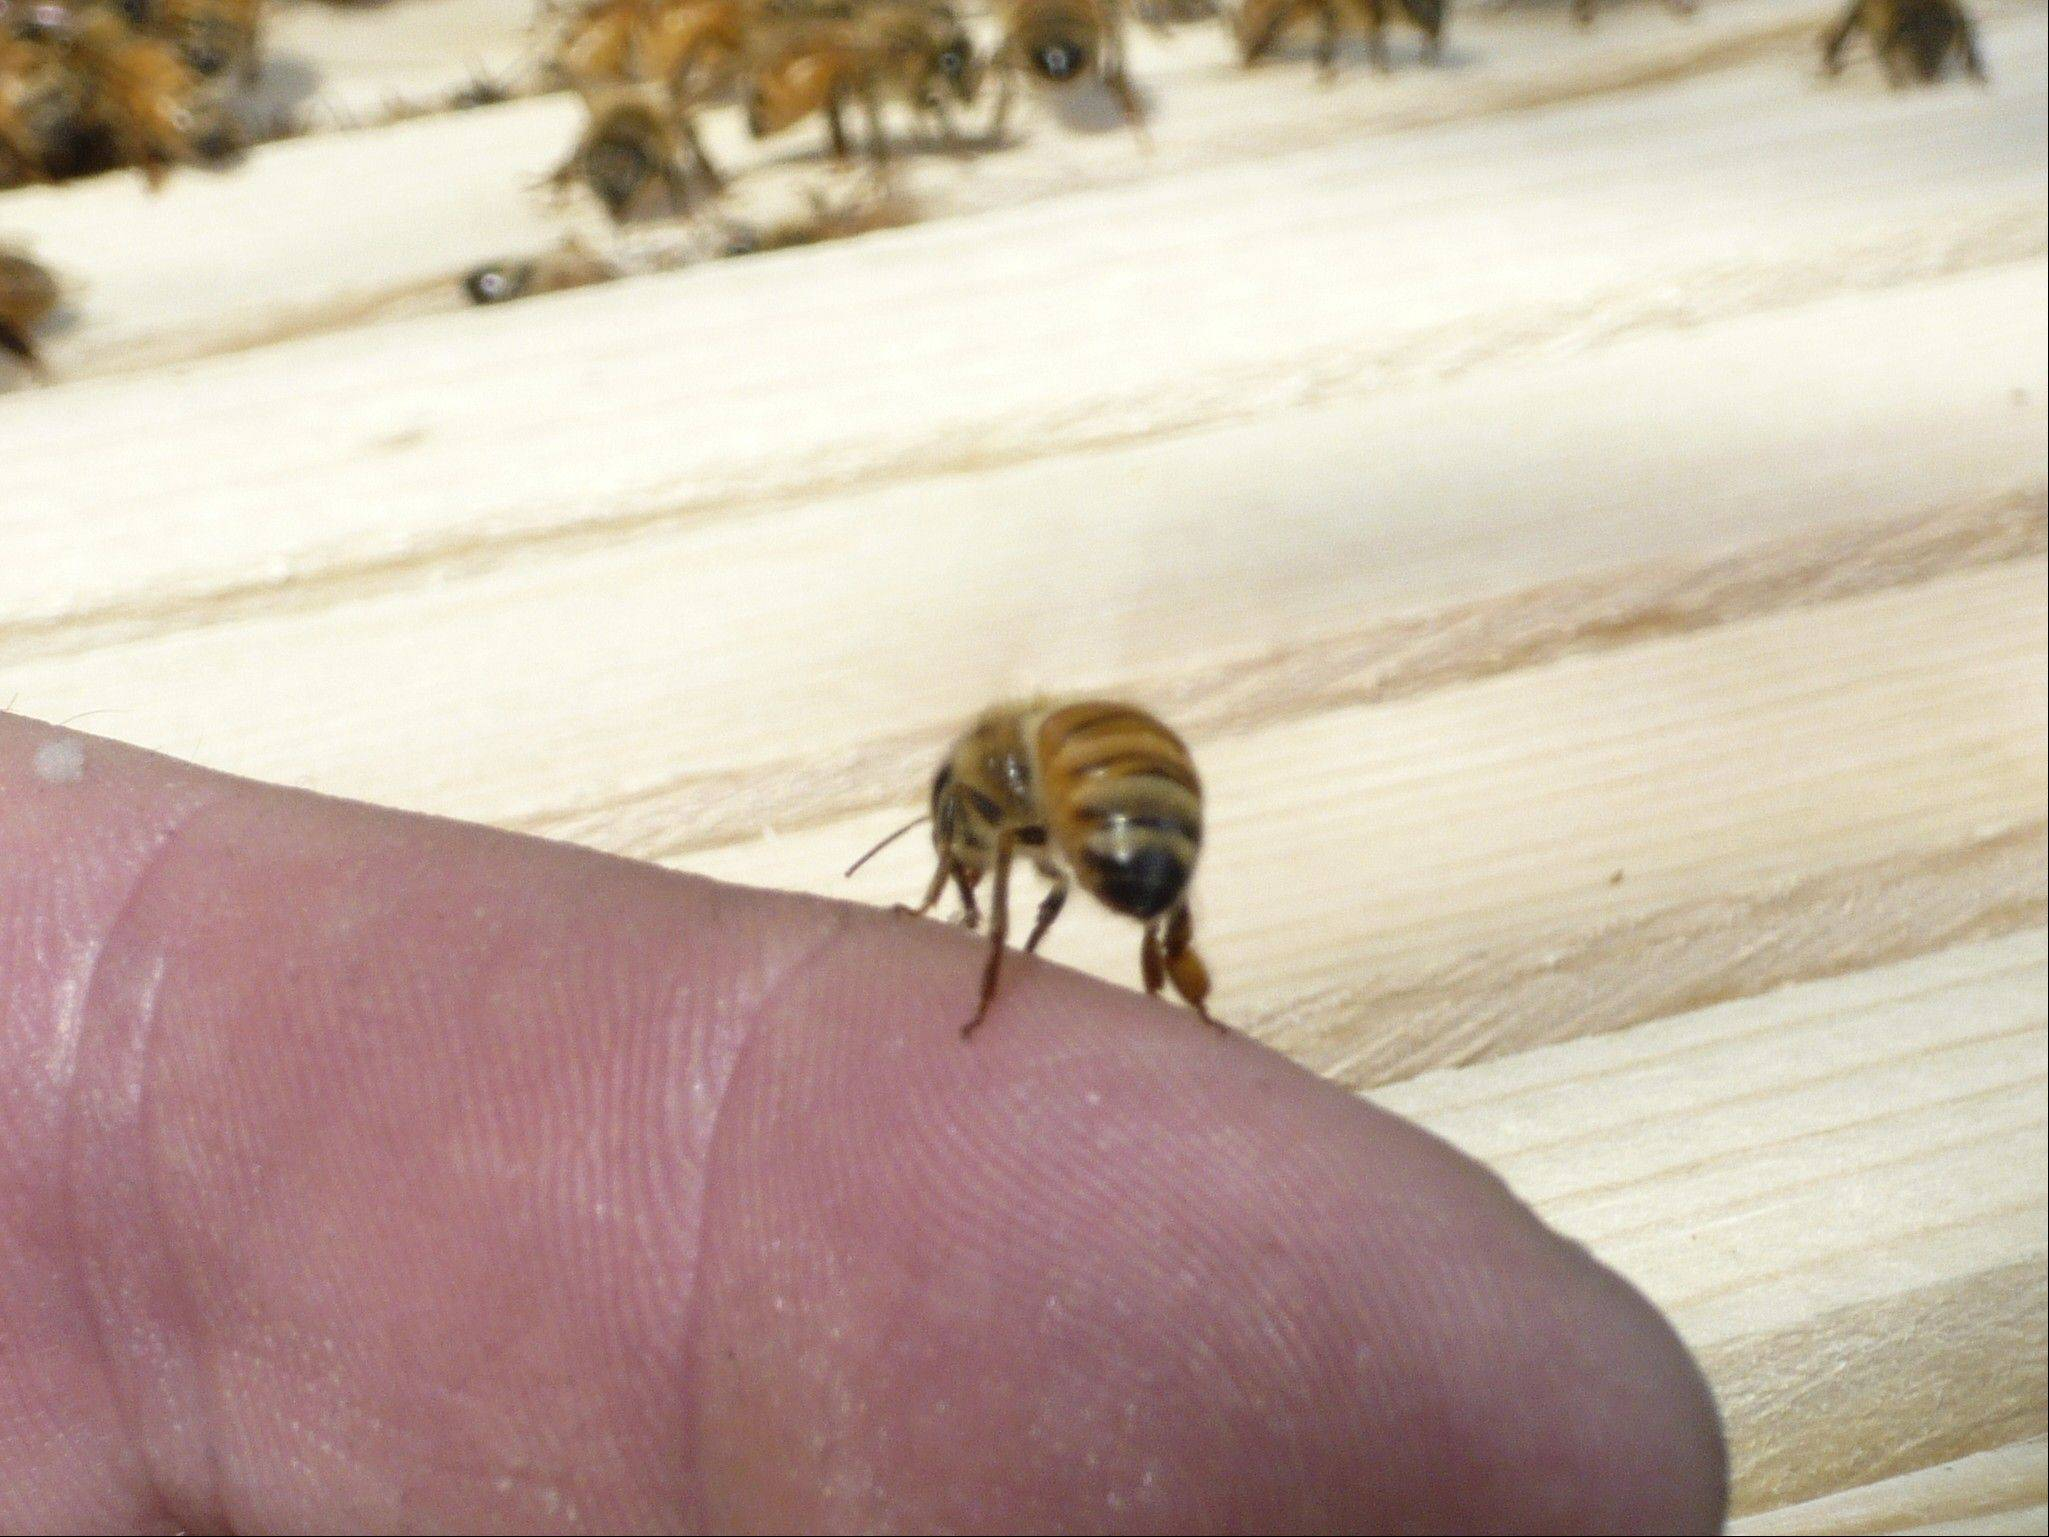 The Carpentersville Village Board is considering whether to lift its ban on bee keeping, which involves honeybees.